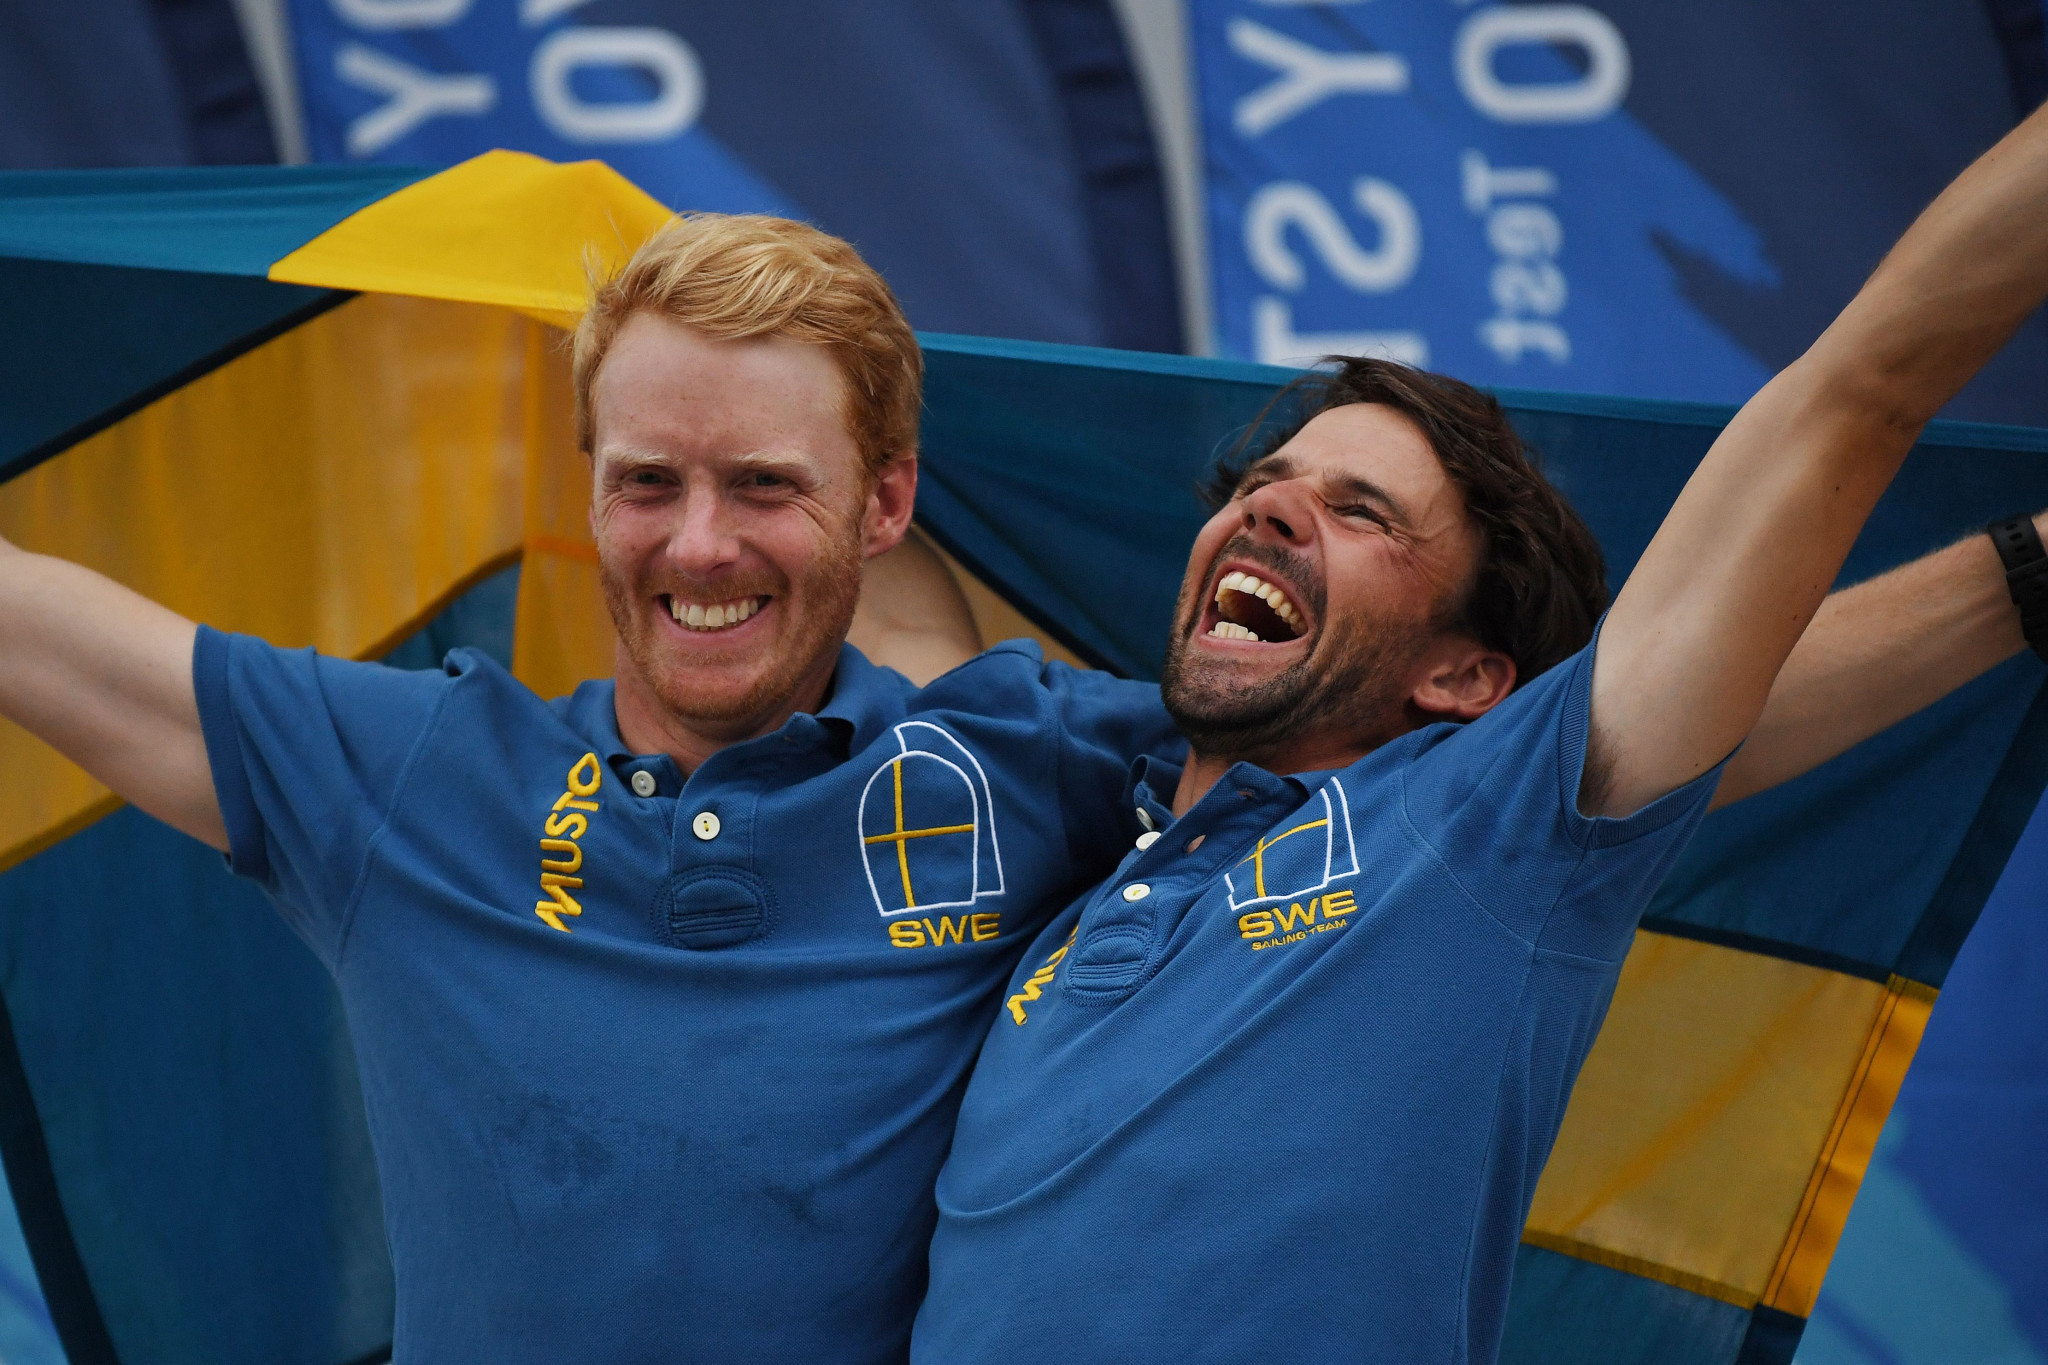 Anton Dahlberg and Fredrik Bergström claimed gold in the men's 470 World Championship ©Getty Images